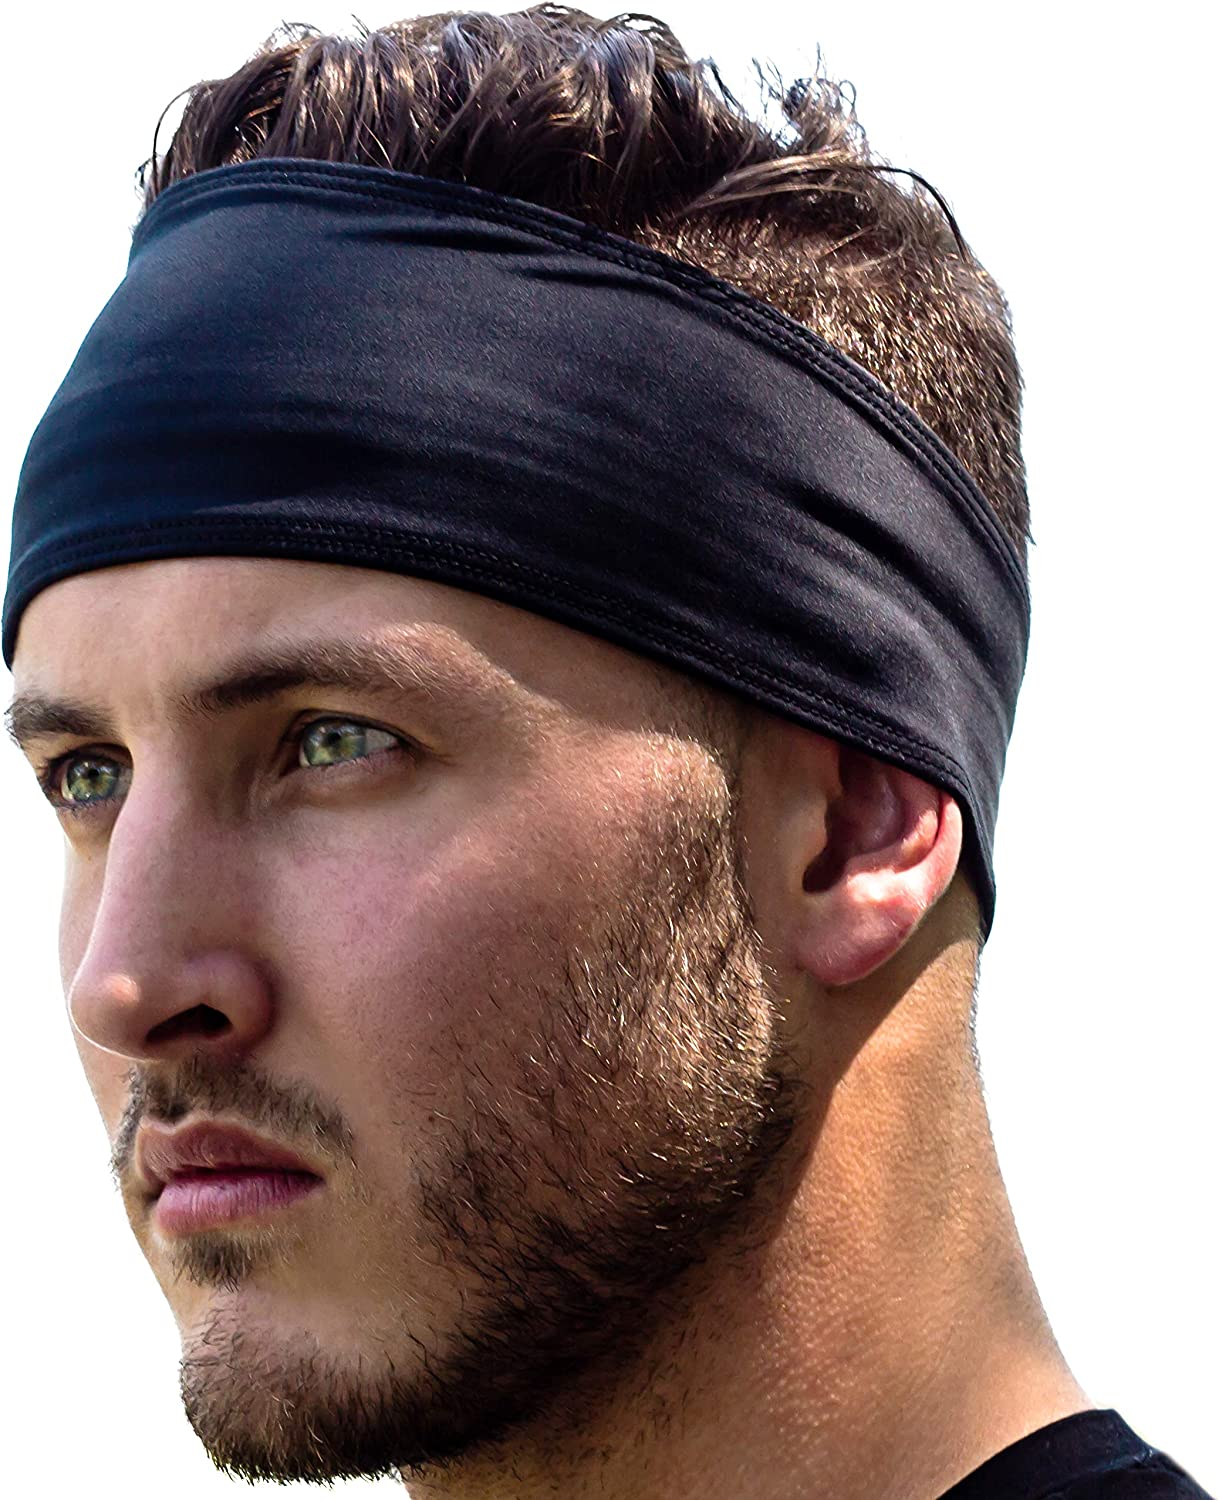 Unisex Women Men Stretch Headband Sports Sweatband Yoga Gym Hair Head Band New